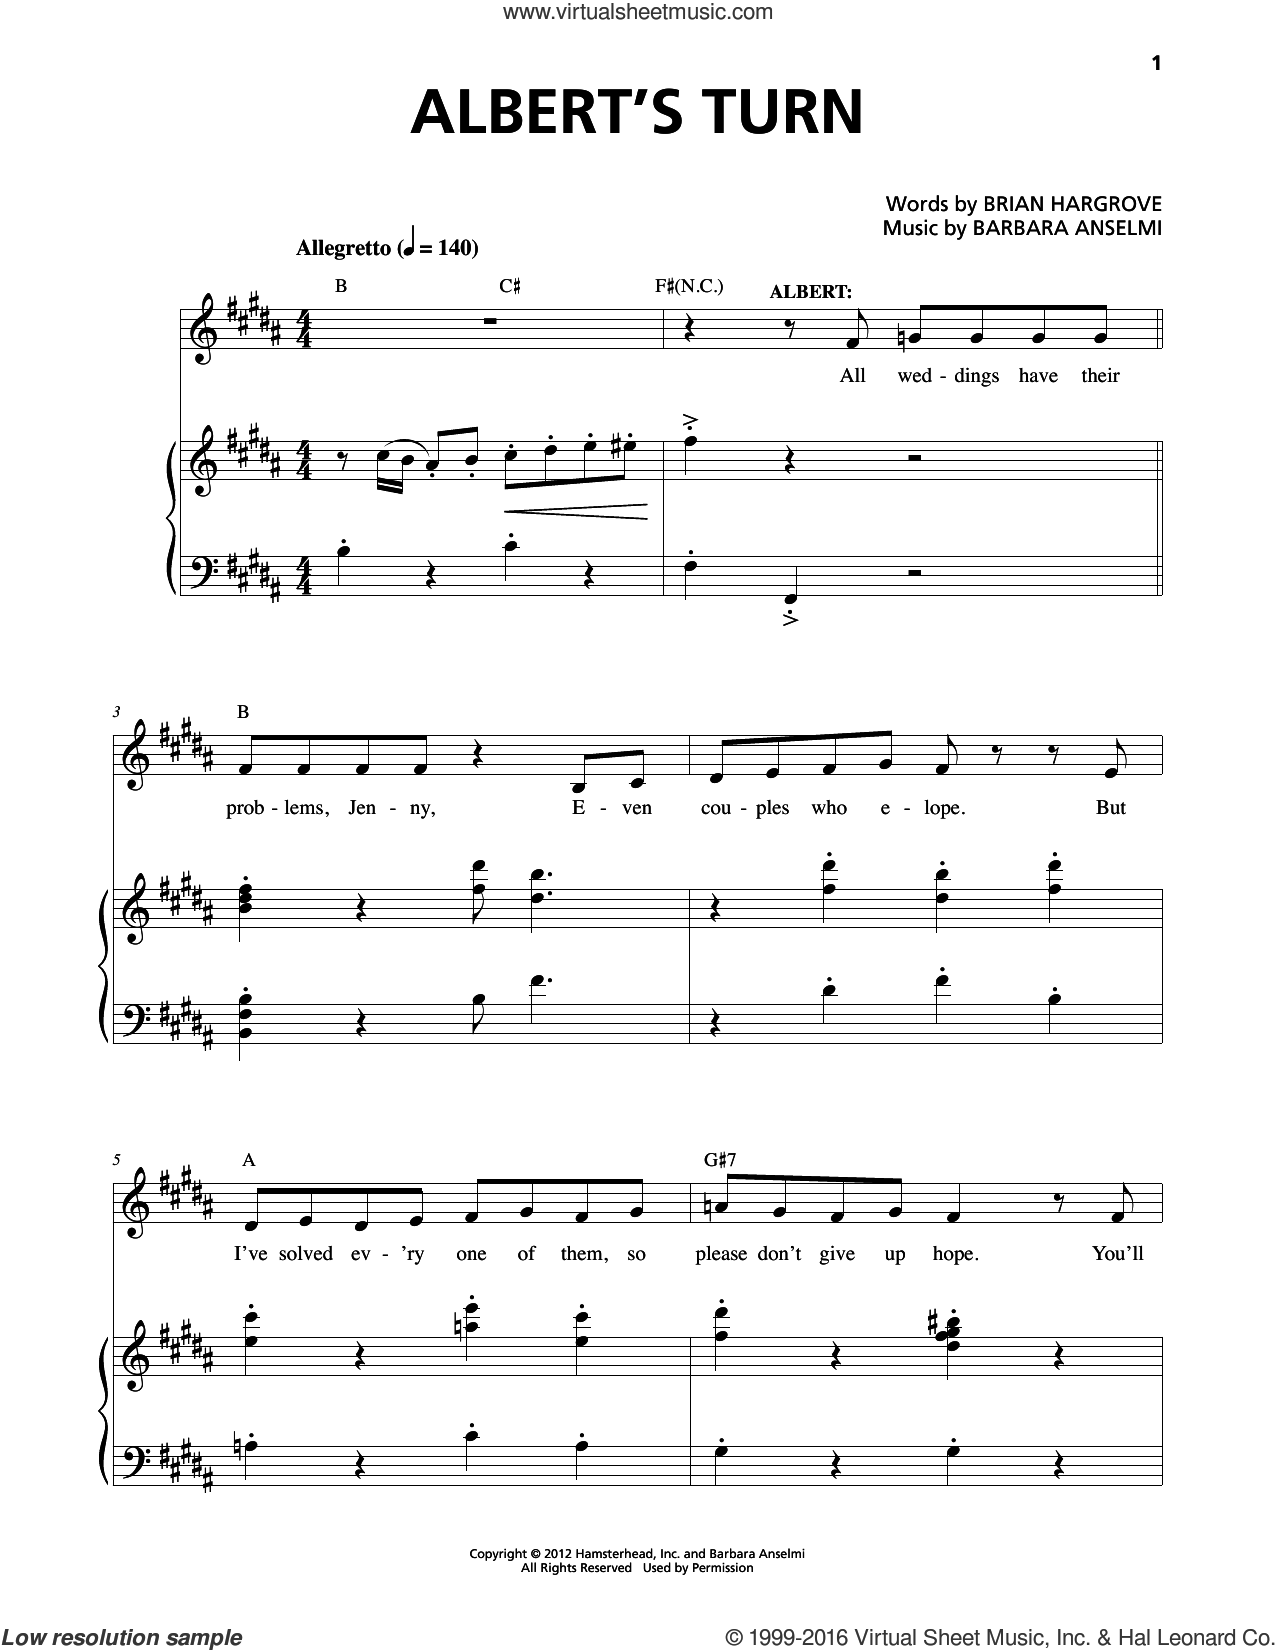 Albert's Turn sheet music for voice and piano by Barbara Anselmi, Barbara Anselmi and Brian Hargrove and Brian Hargrove, intermediate skill level